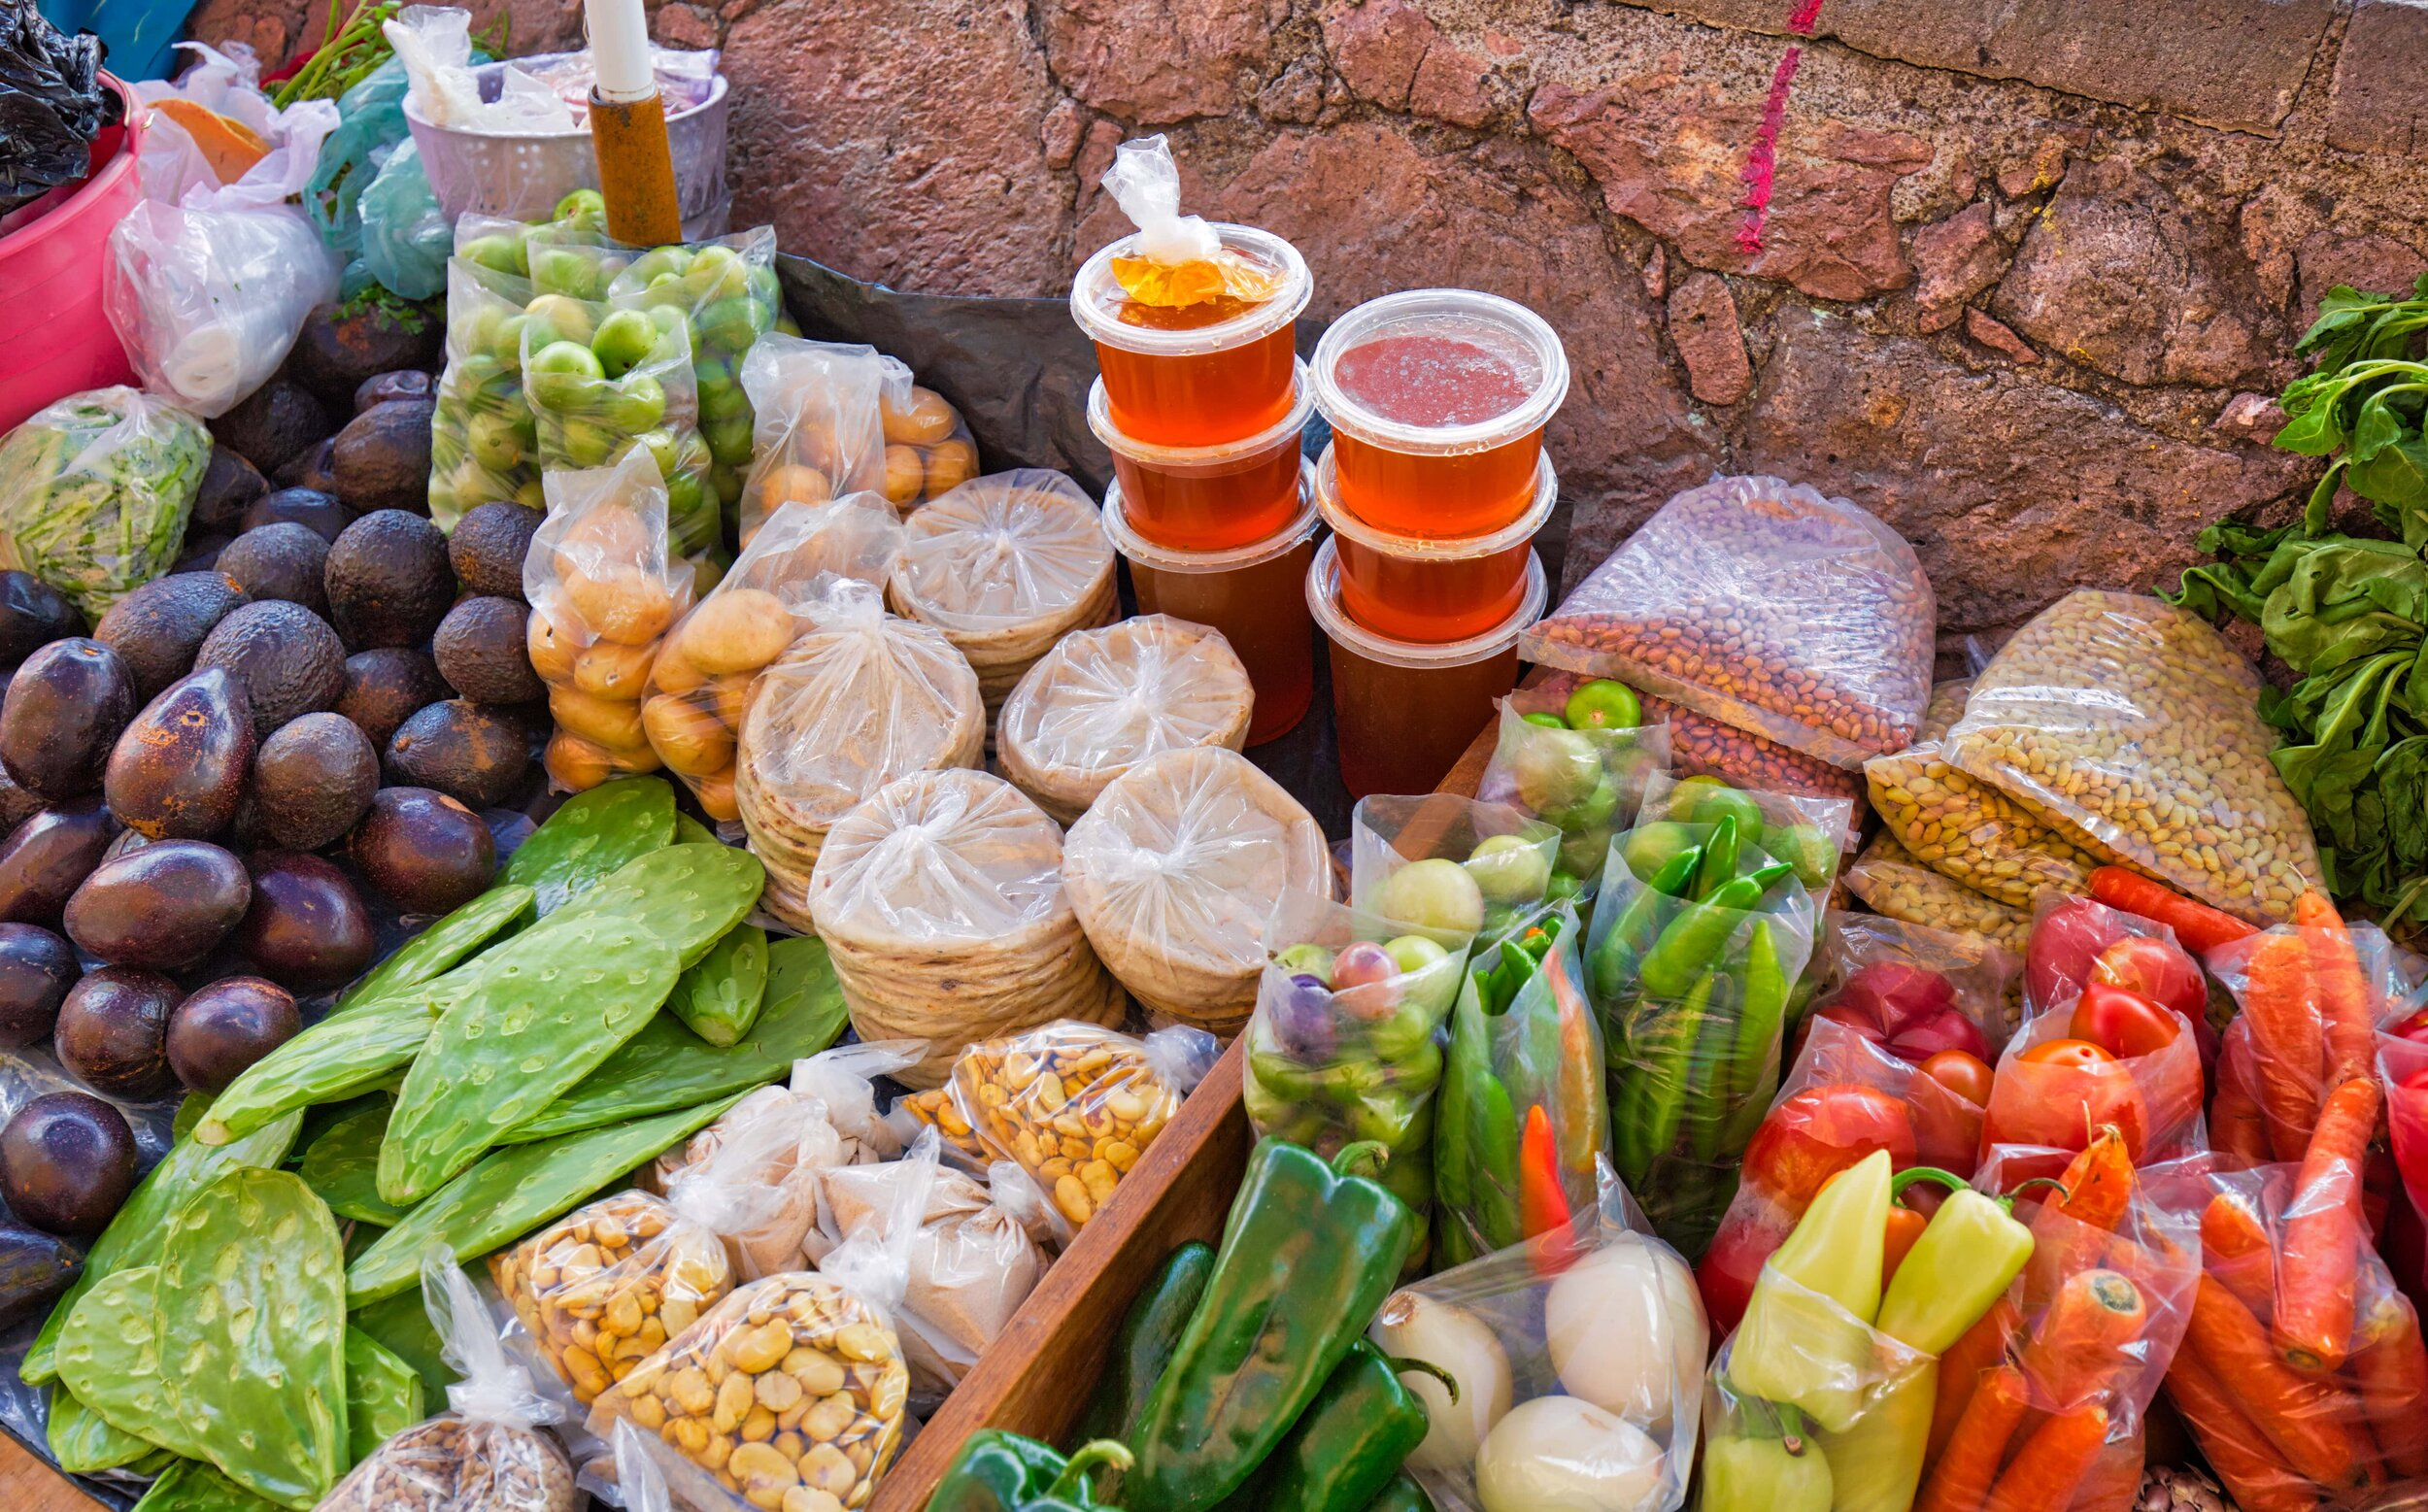 Mexican staples at a food market Mexico City.